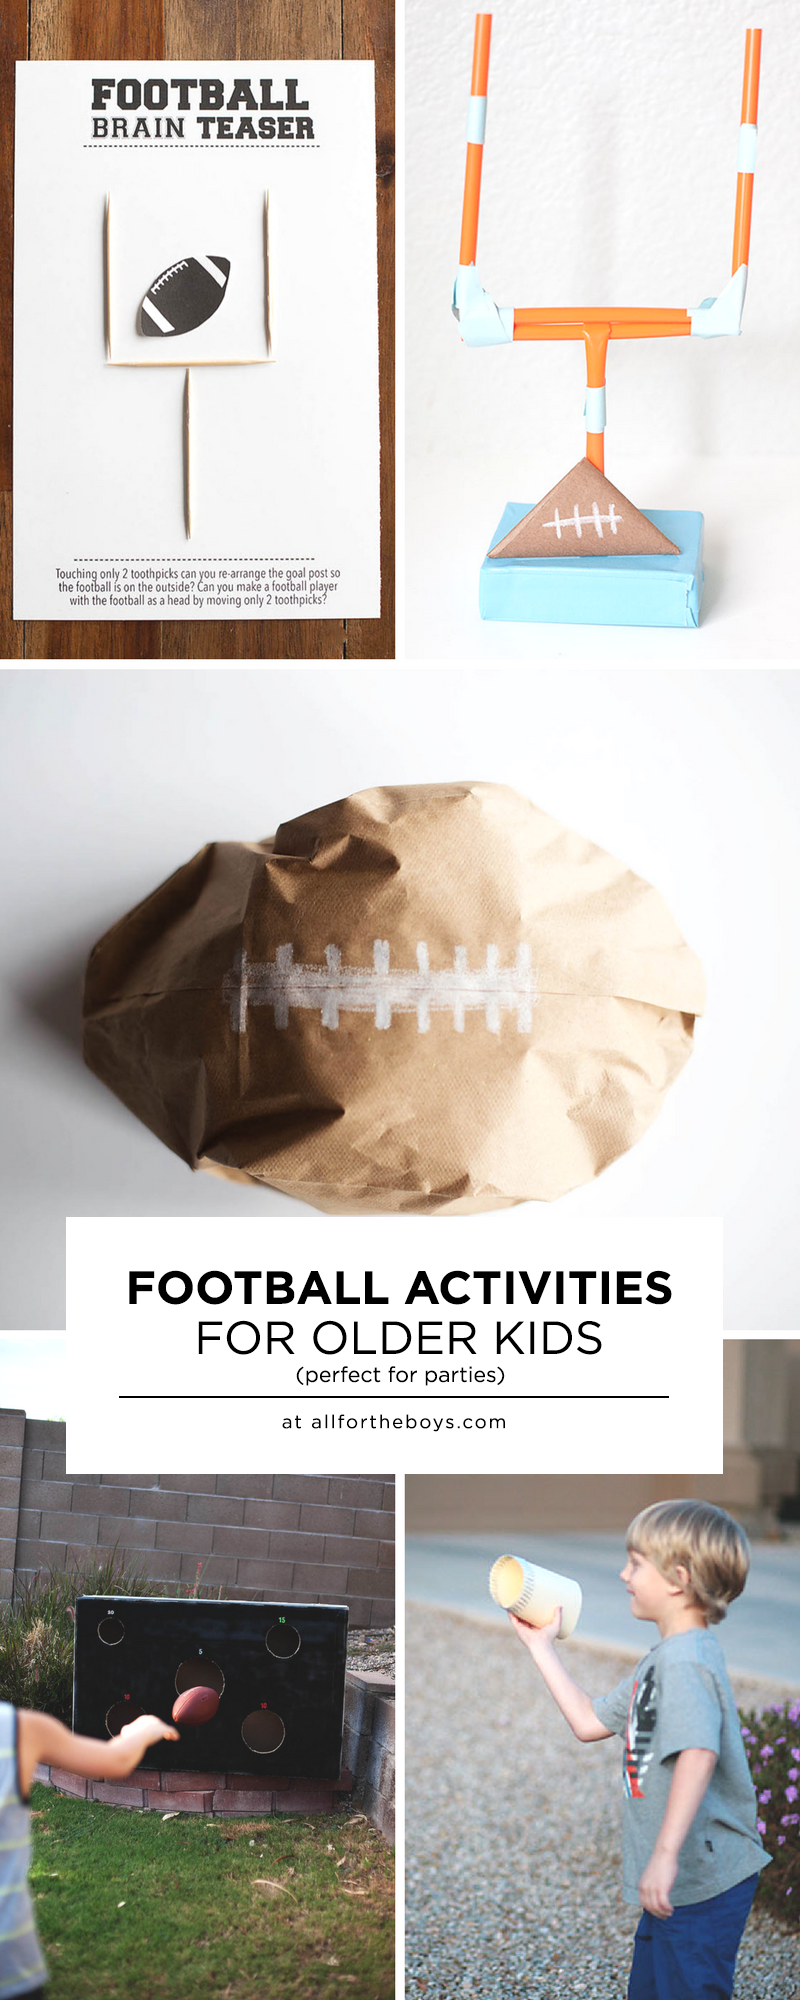 b46dc63be2 Football activities for older kids - perfect for a gameday football party!